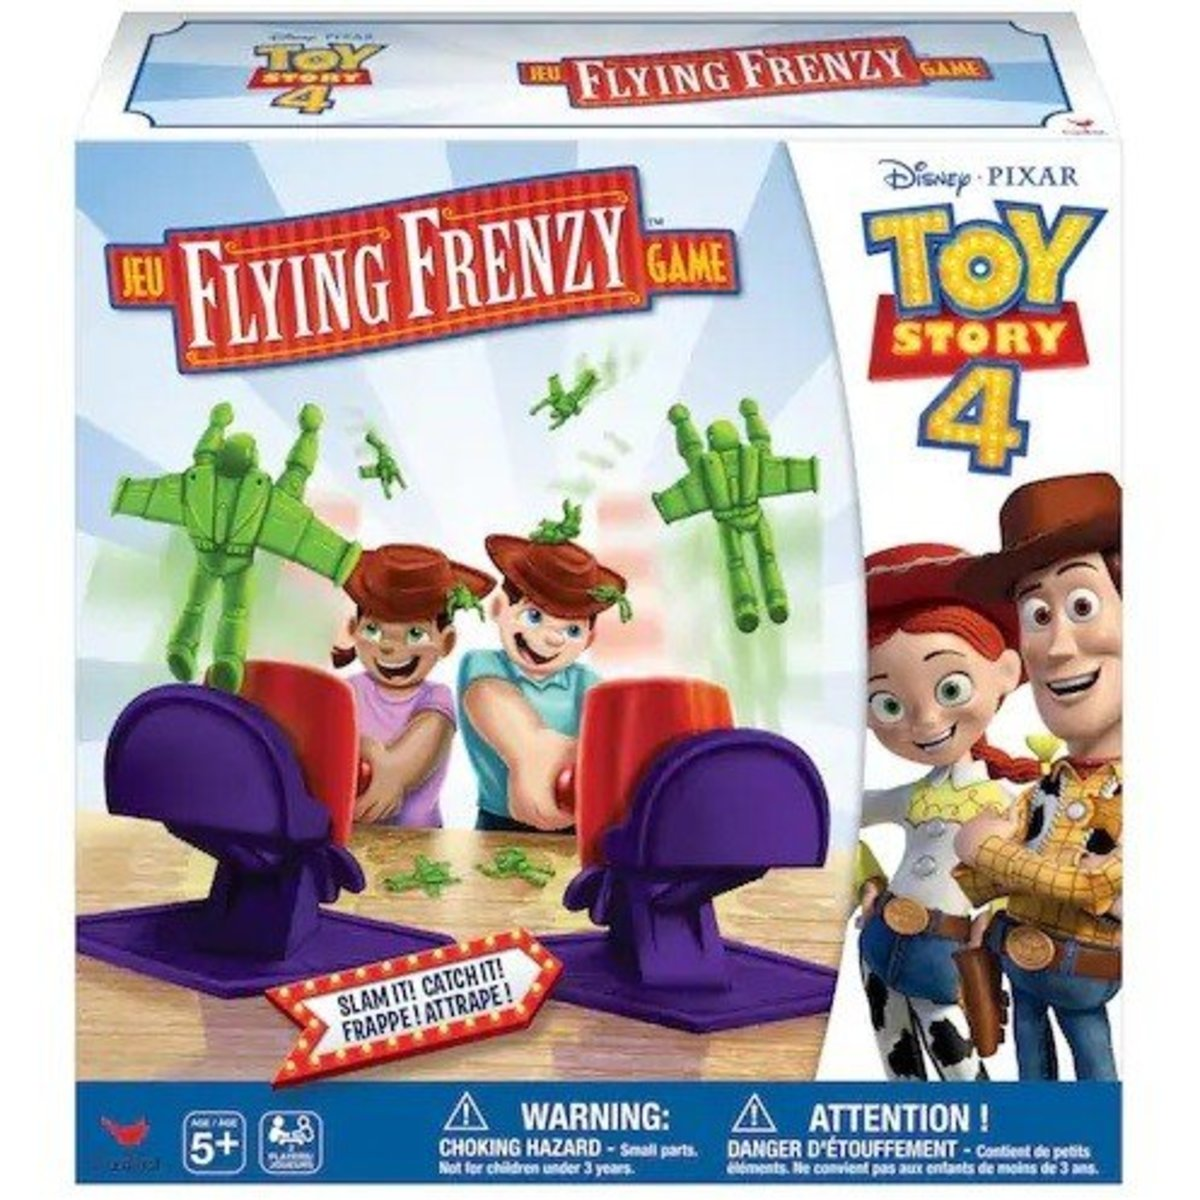 Toy Story 4 Flying Frenzy Game [Licensed by Disney]